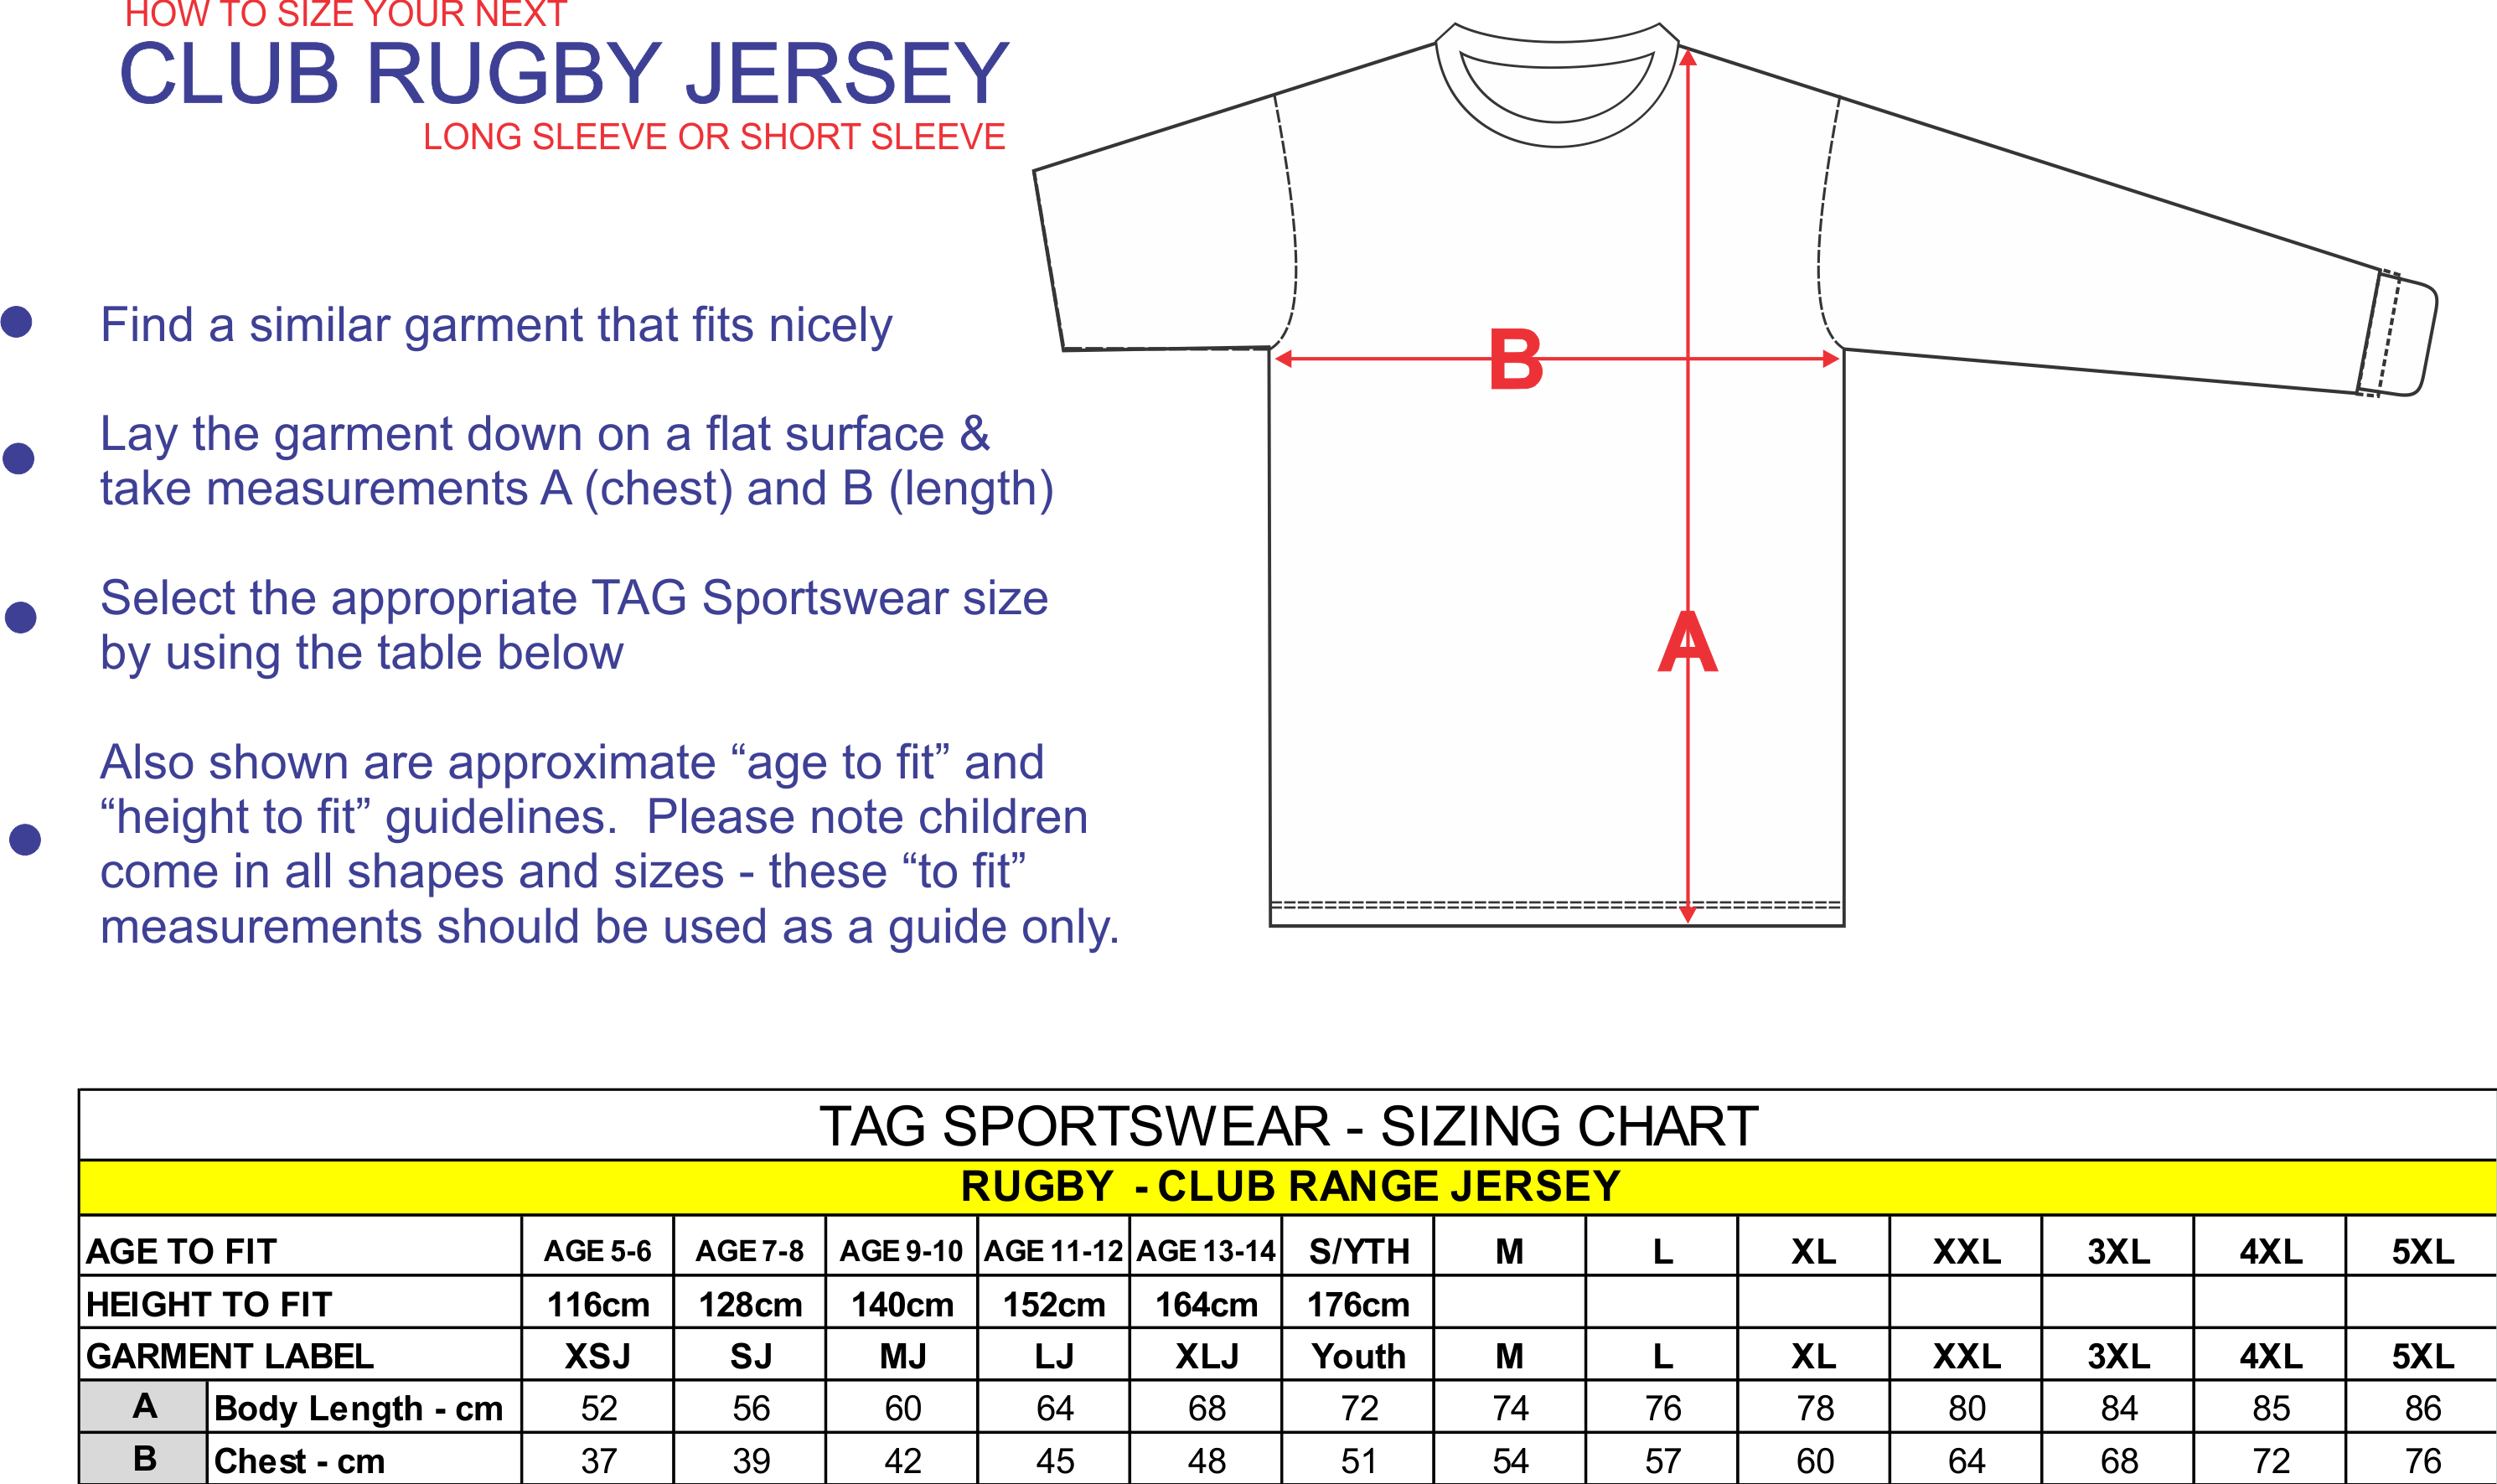 rugby-club-range-jersey-sizing